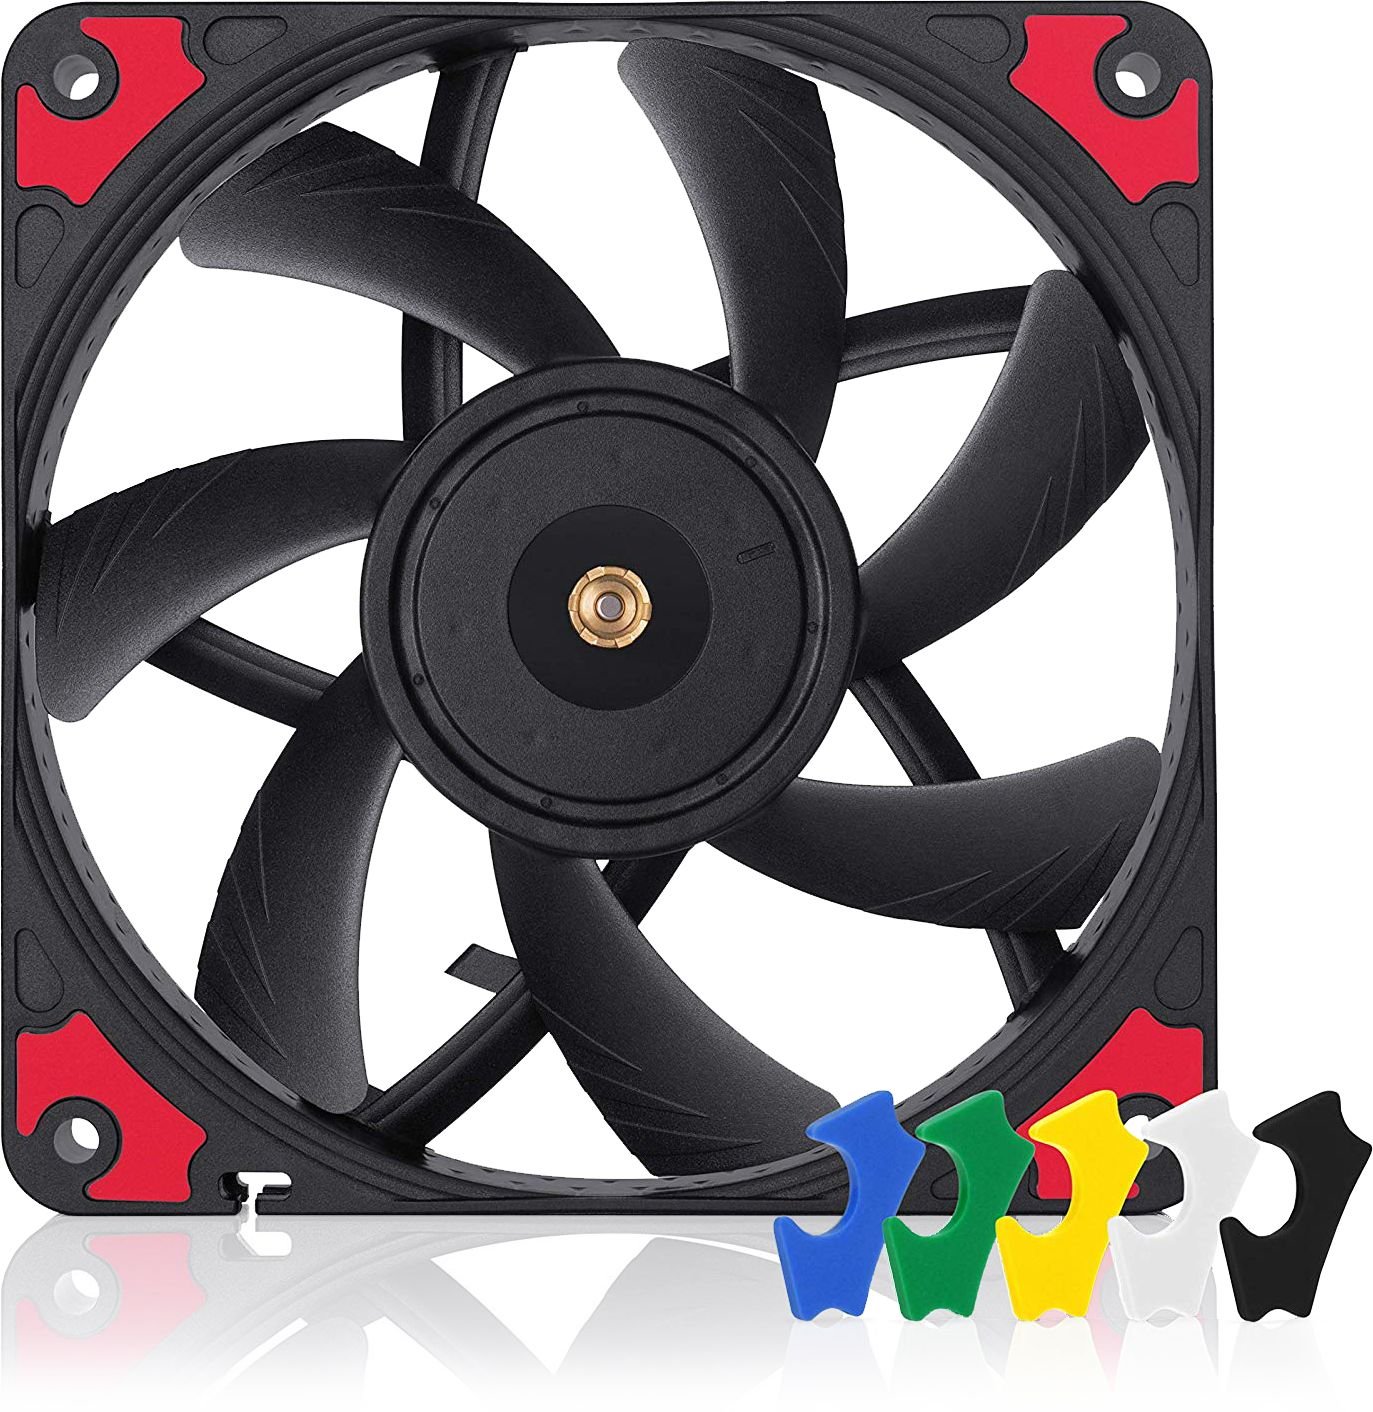 12V White Blade F12 PWM 120mm 4-Pin PWM fan with standard case ARCTIC